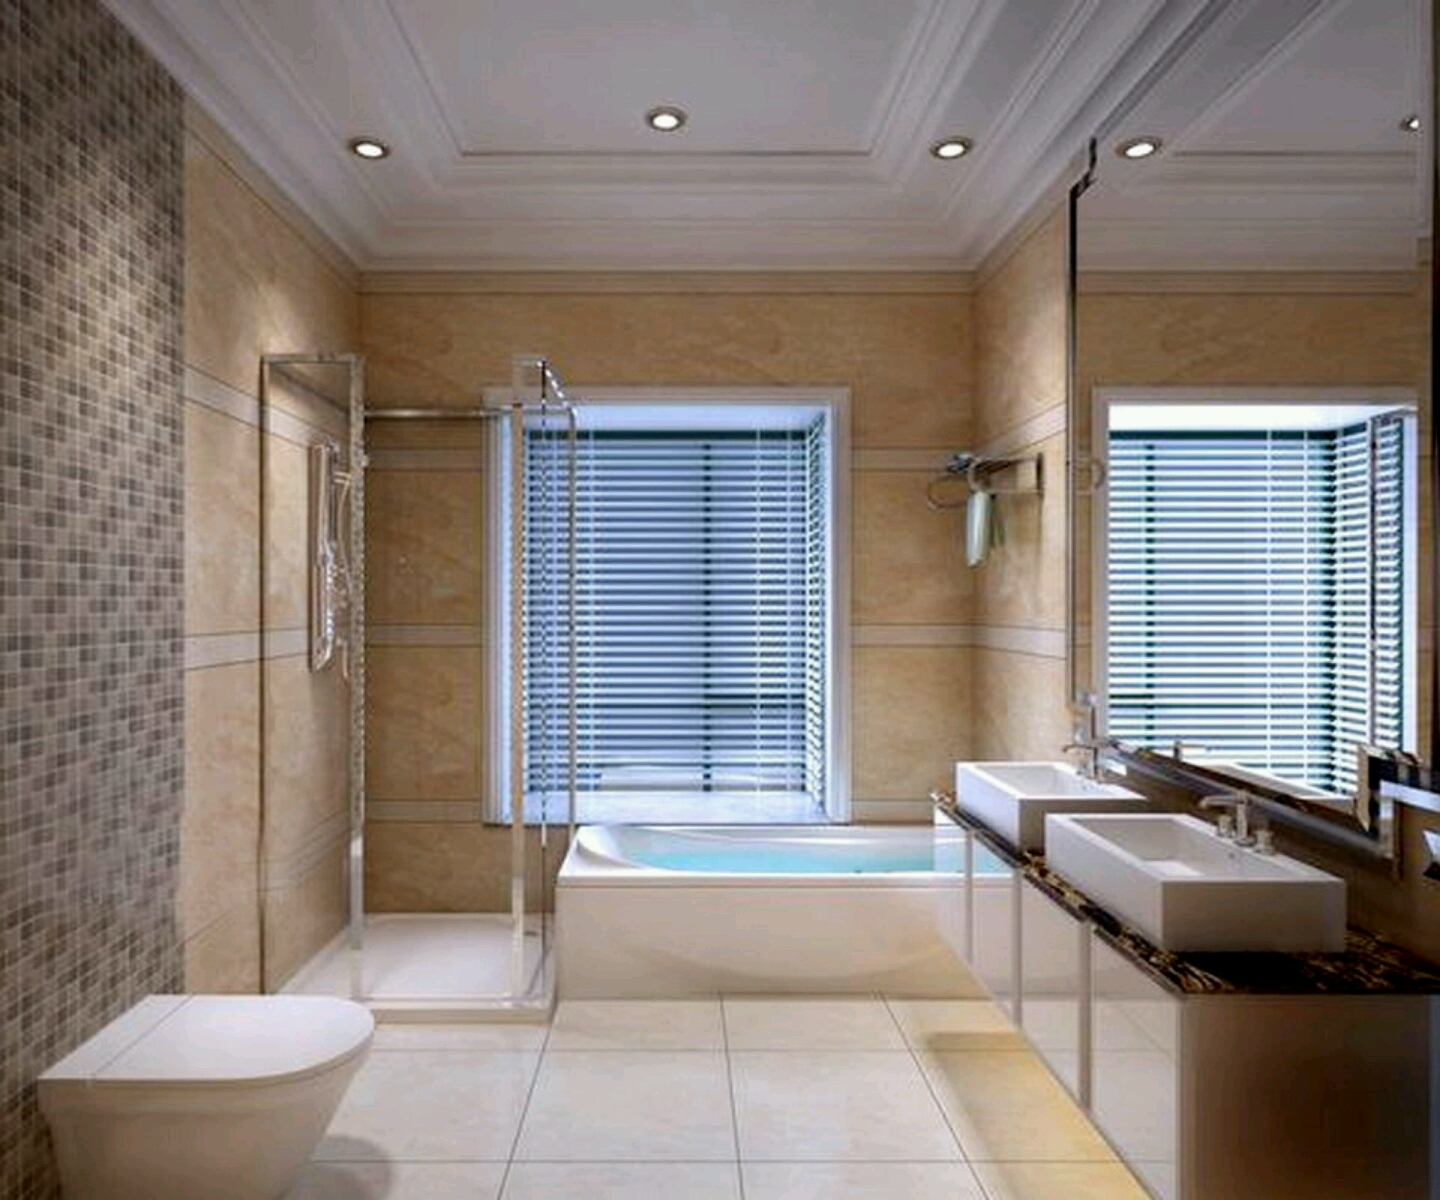 Modern bathrooms best designs ideas new home designs for The best bathroom design